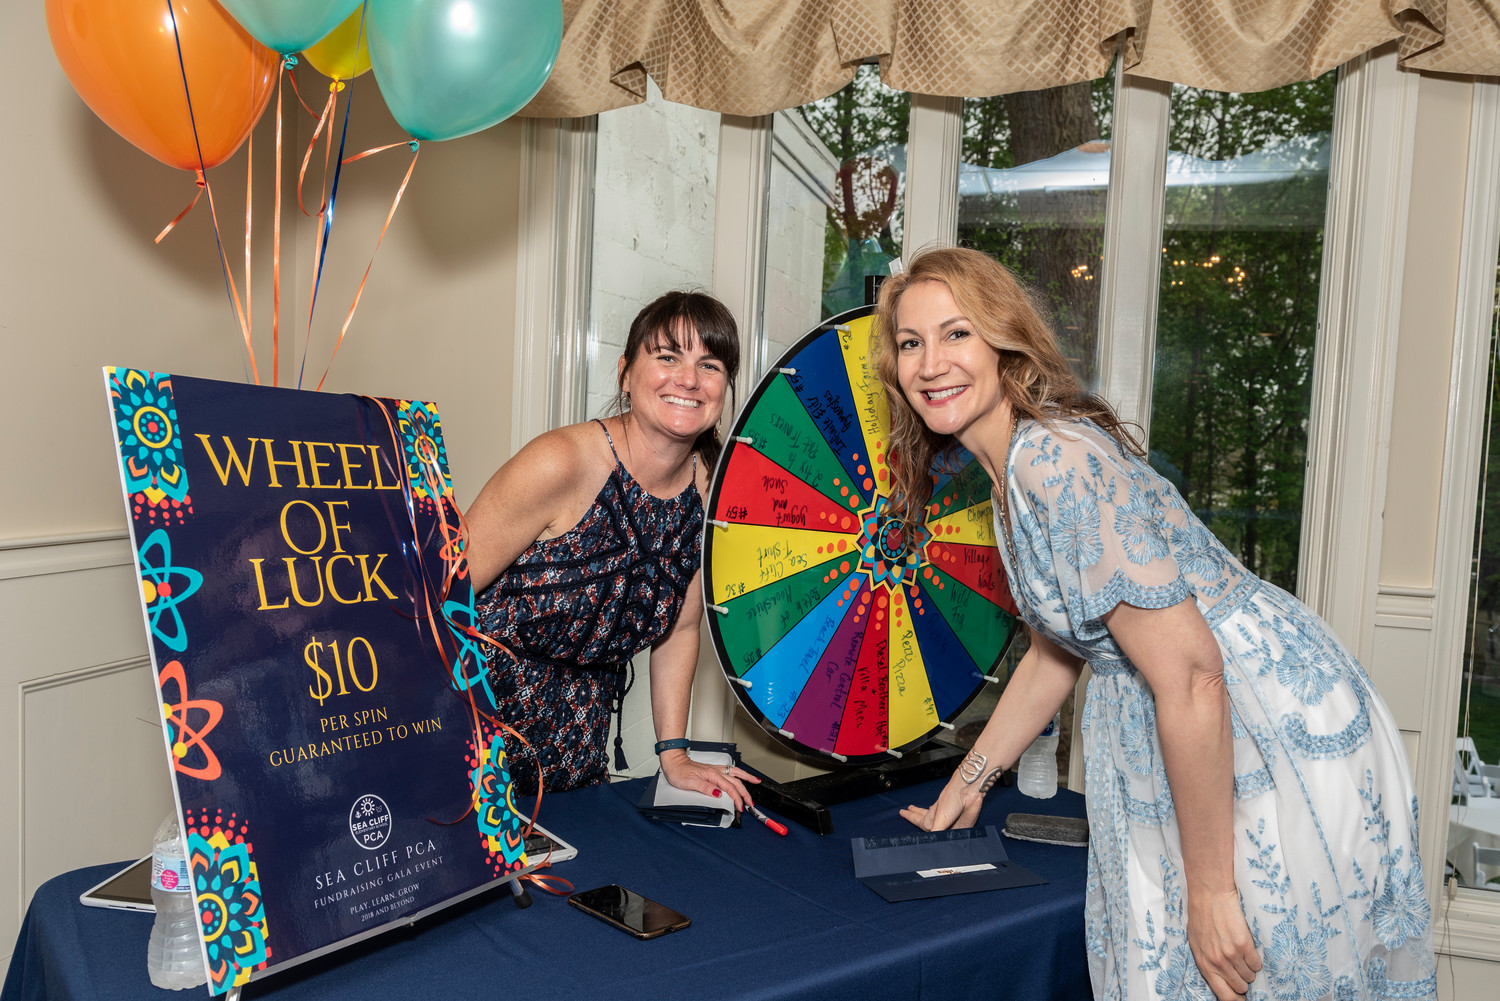 Laura Ryniker, left, and Heidi Hess worked the prize wheel during the event.